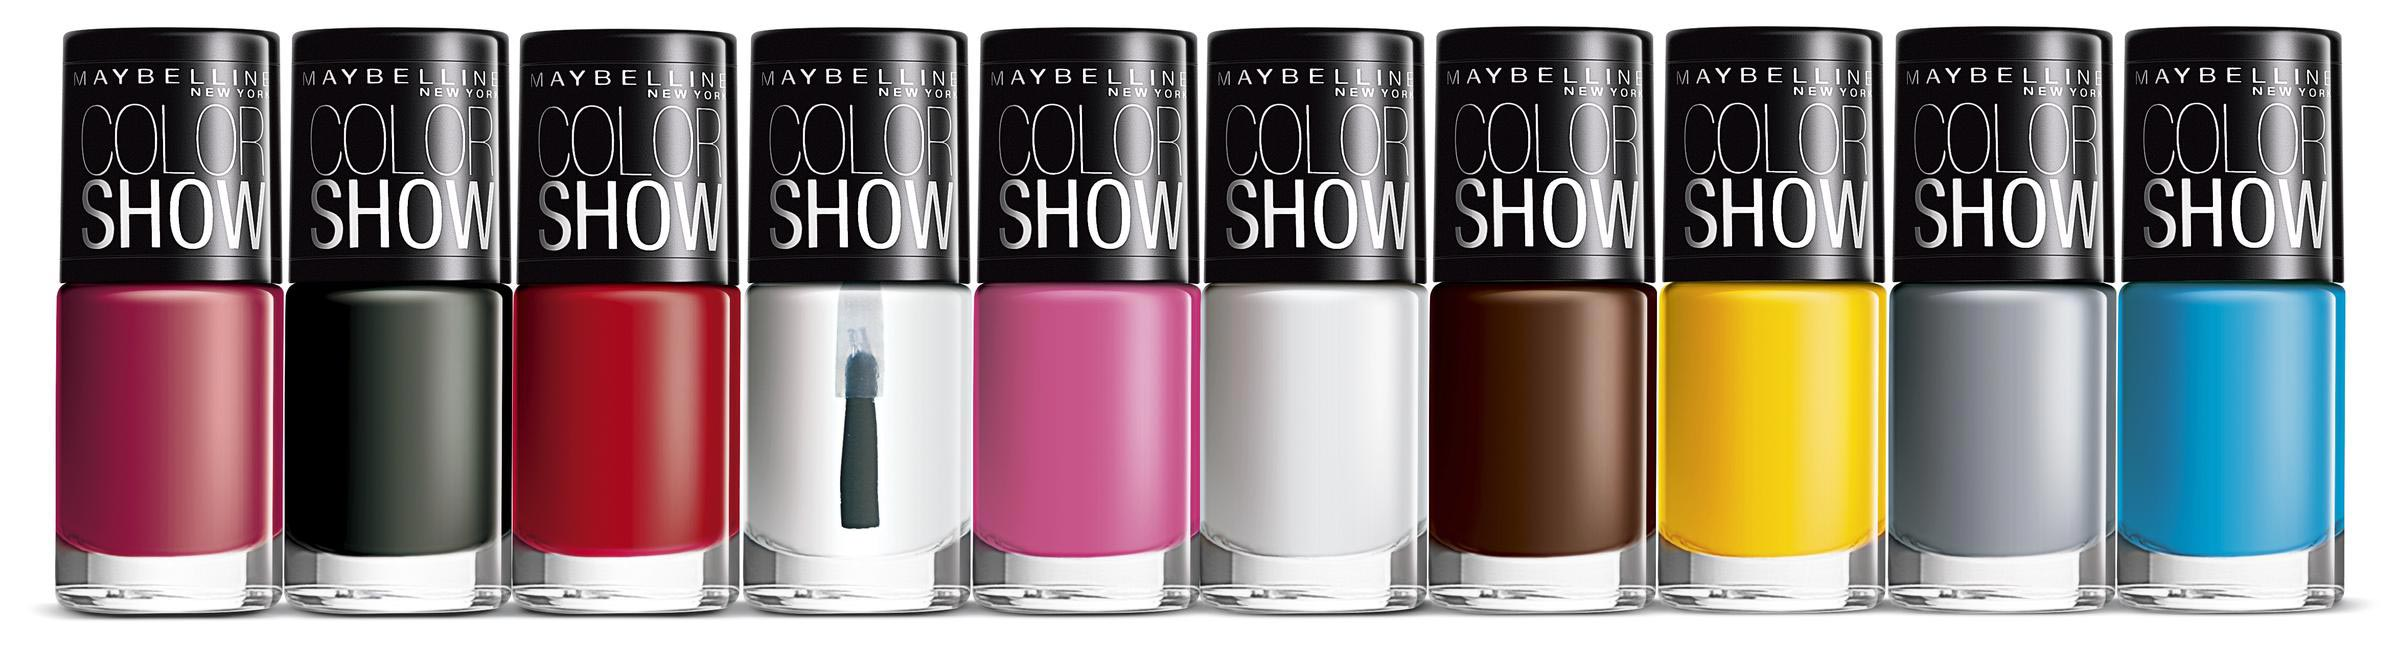 Maybelline New York Color Show Rs. 75 each